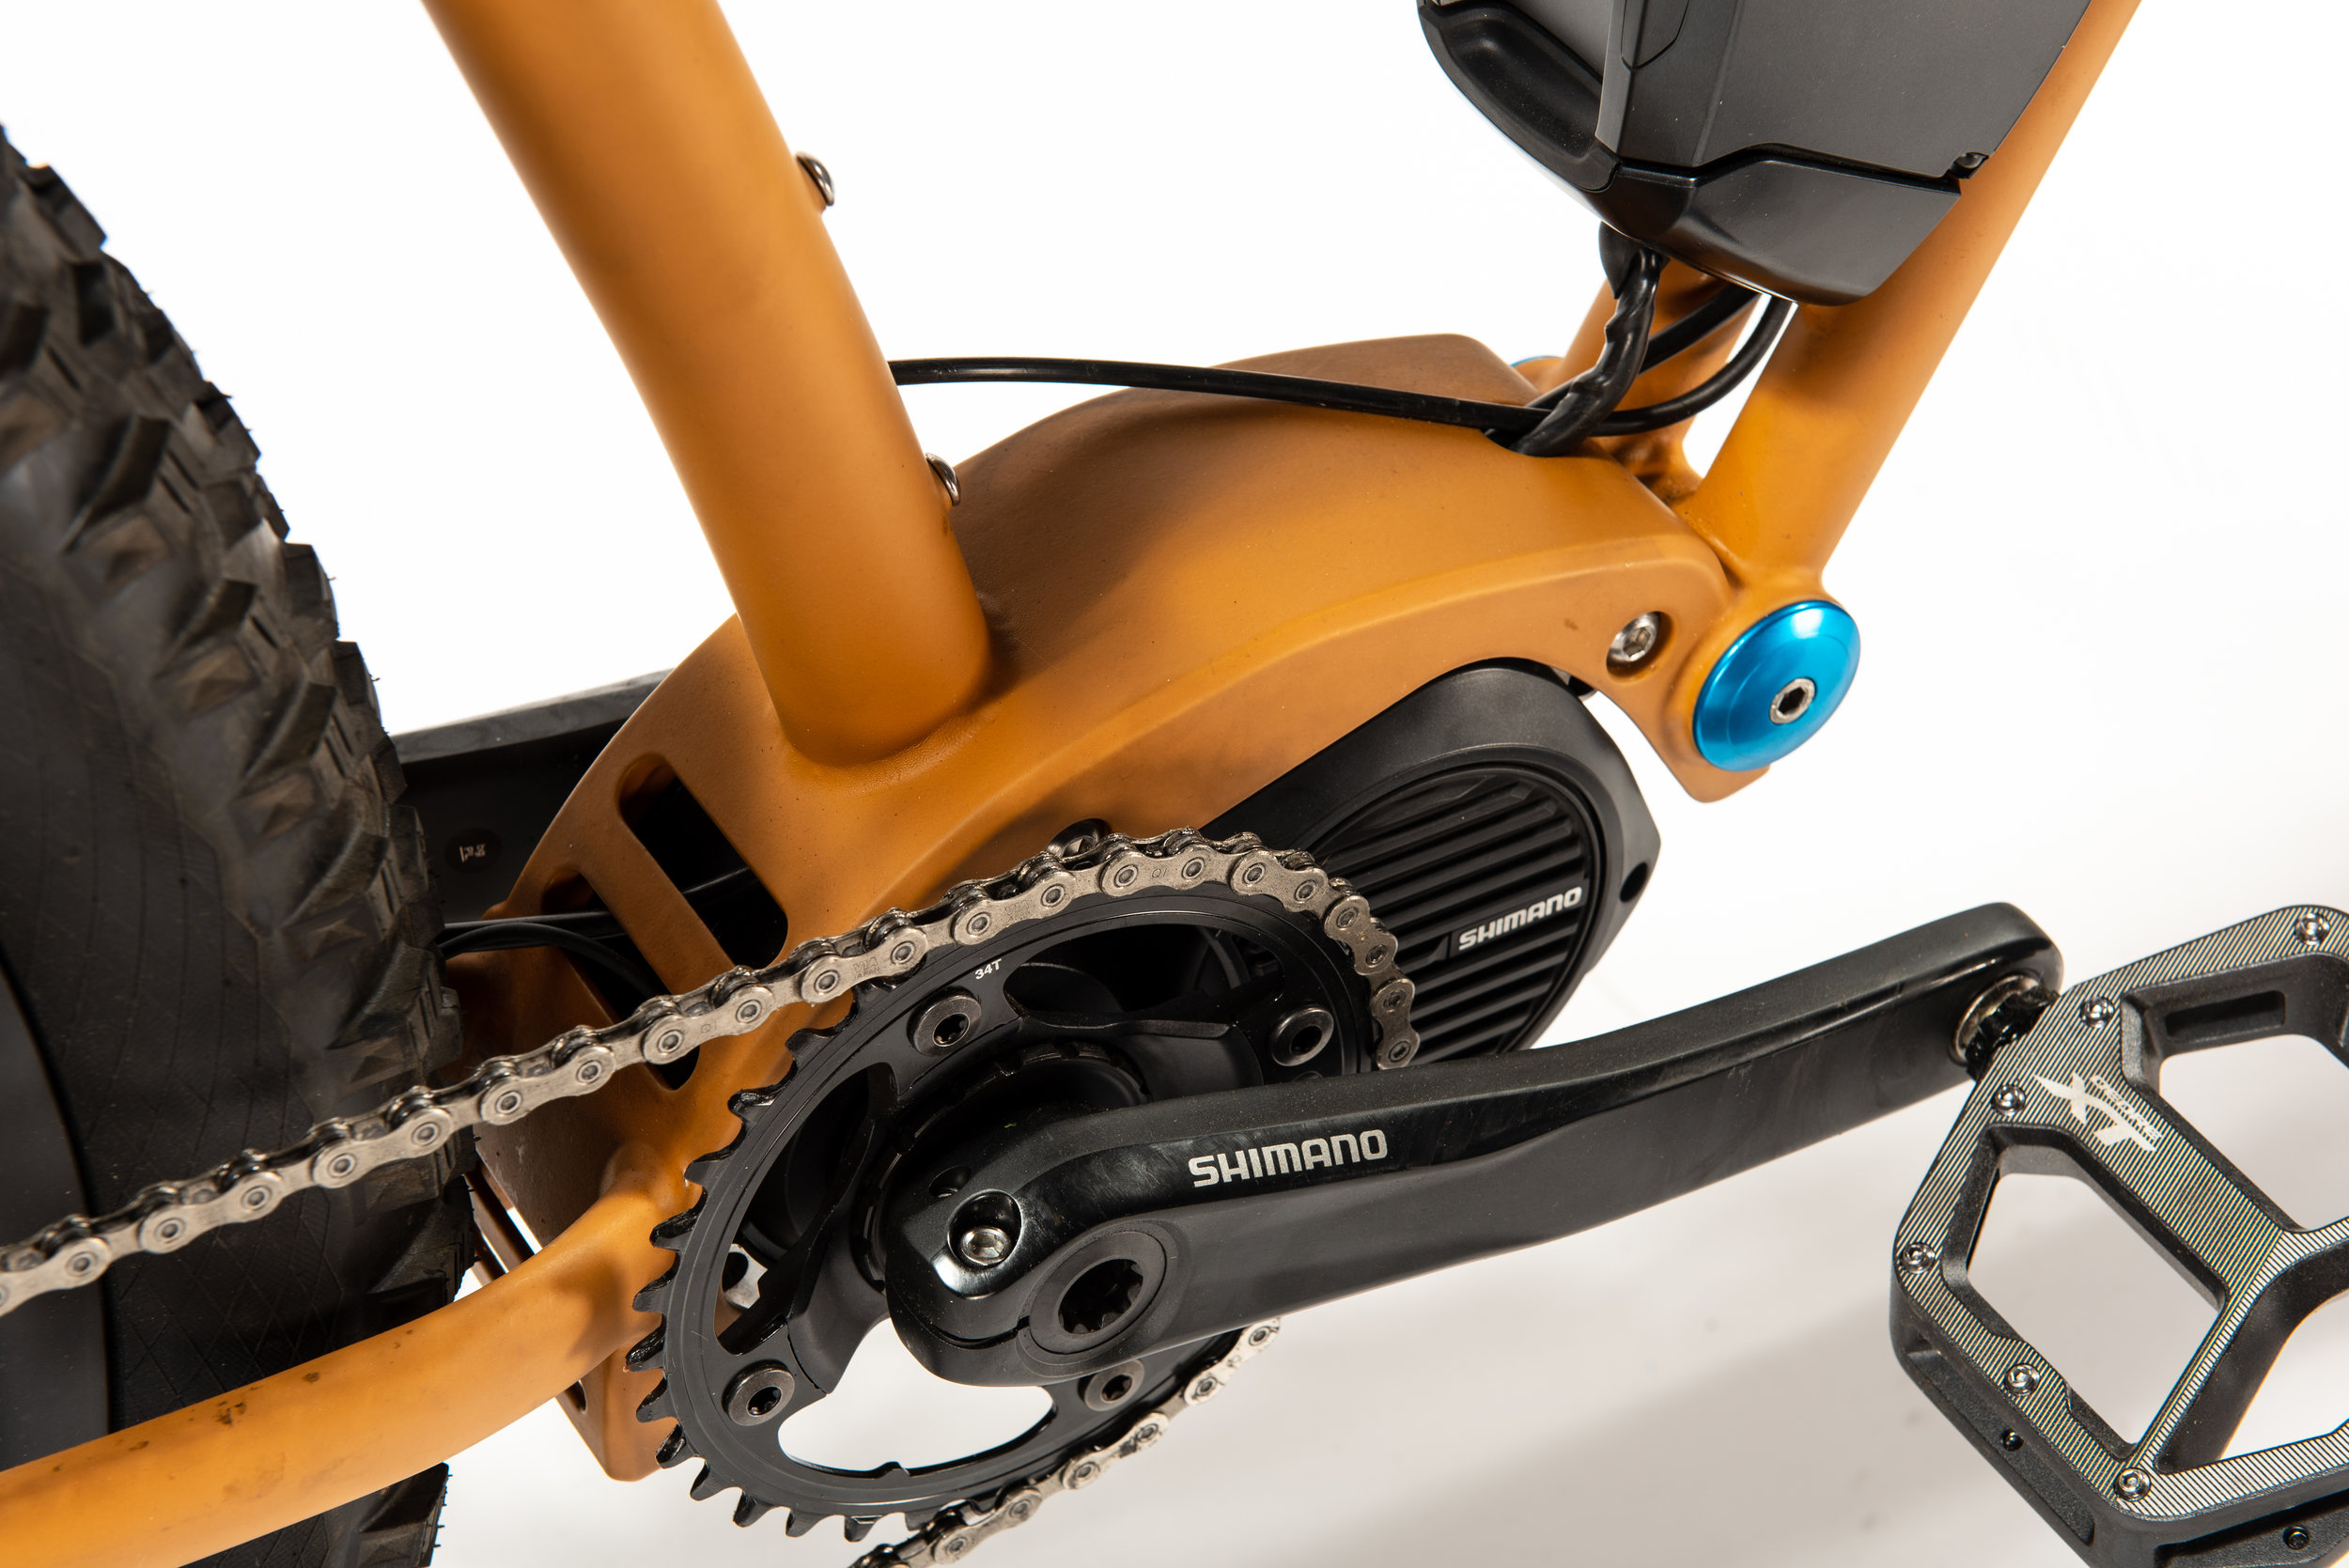 North American Handmade Bicycle Show  World's Premier Showcase for Frame Builders